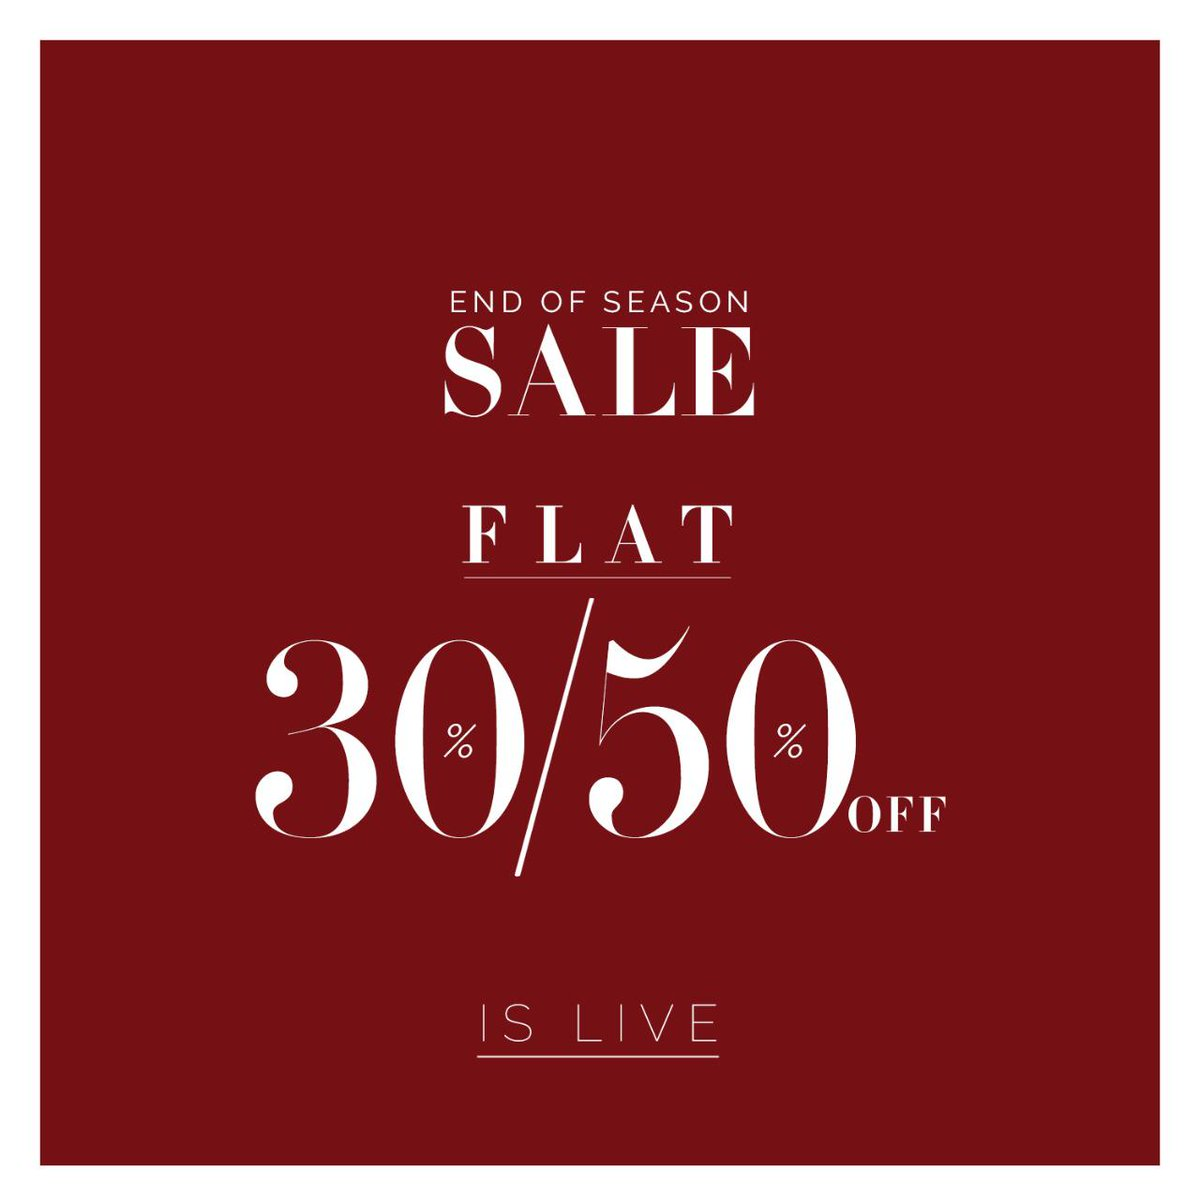 Have you shopped the sales yet? 'Cause it's raining discounts  Monsoon season calls for some light and fun new outfits at flat 30% and 50% OFF! To shop, visit Sana Safinaz outlet located at the First Floor. #gigamall #gigagroup #shoppingmall #shopping #SanaSafinaz #WTCPAKpic.twitter.com/tPIAUpDOoV